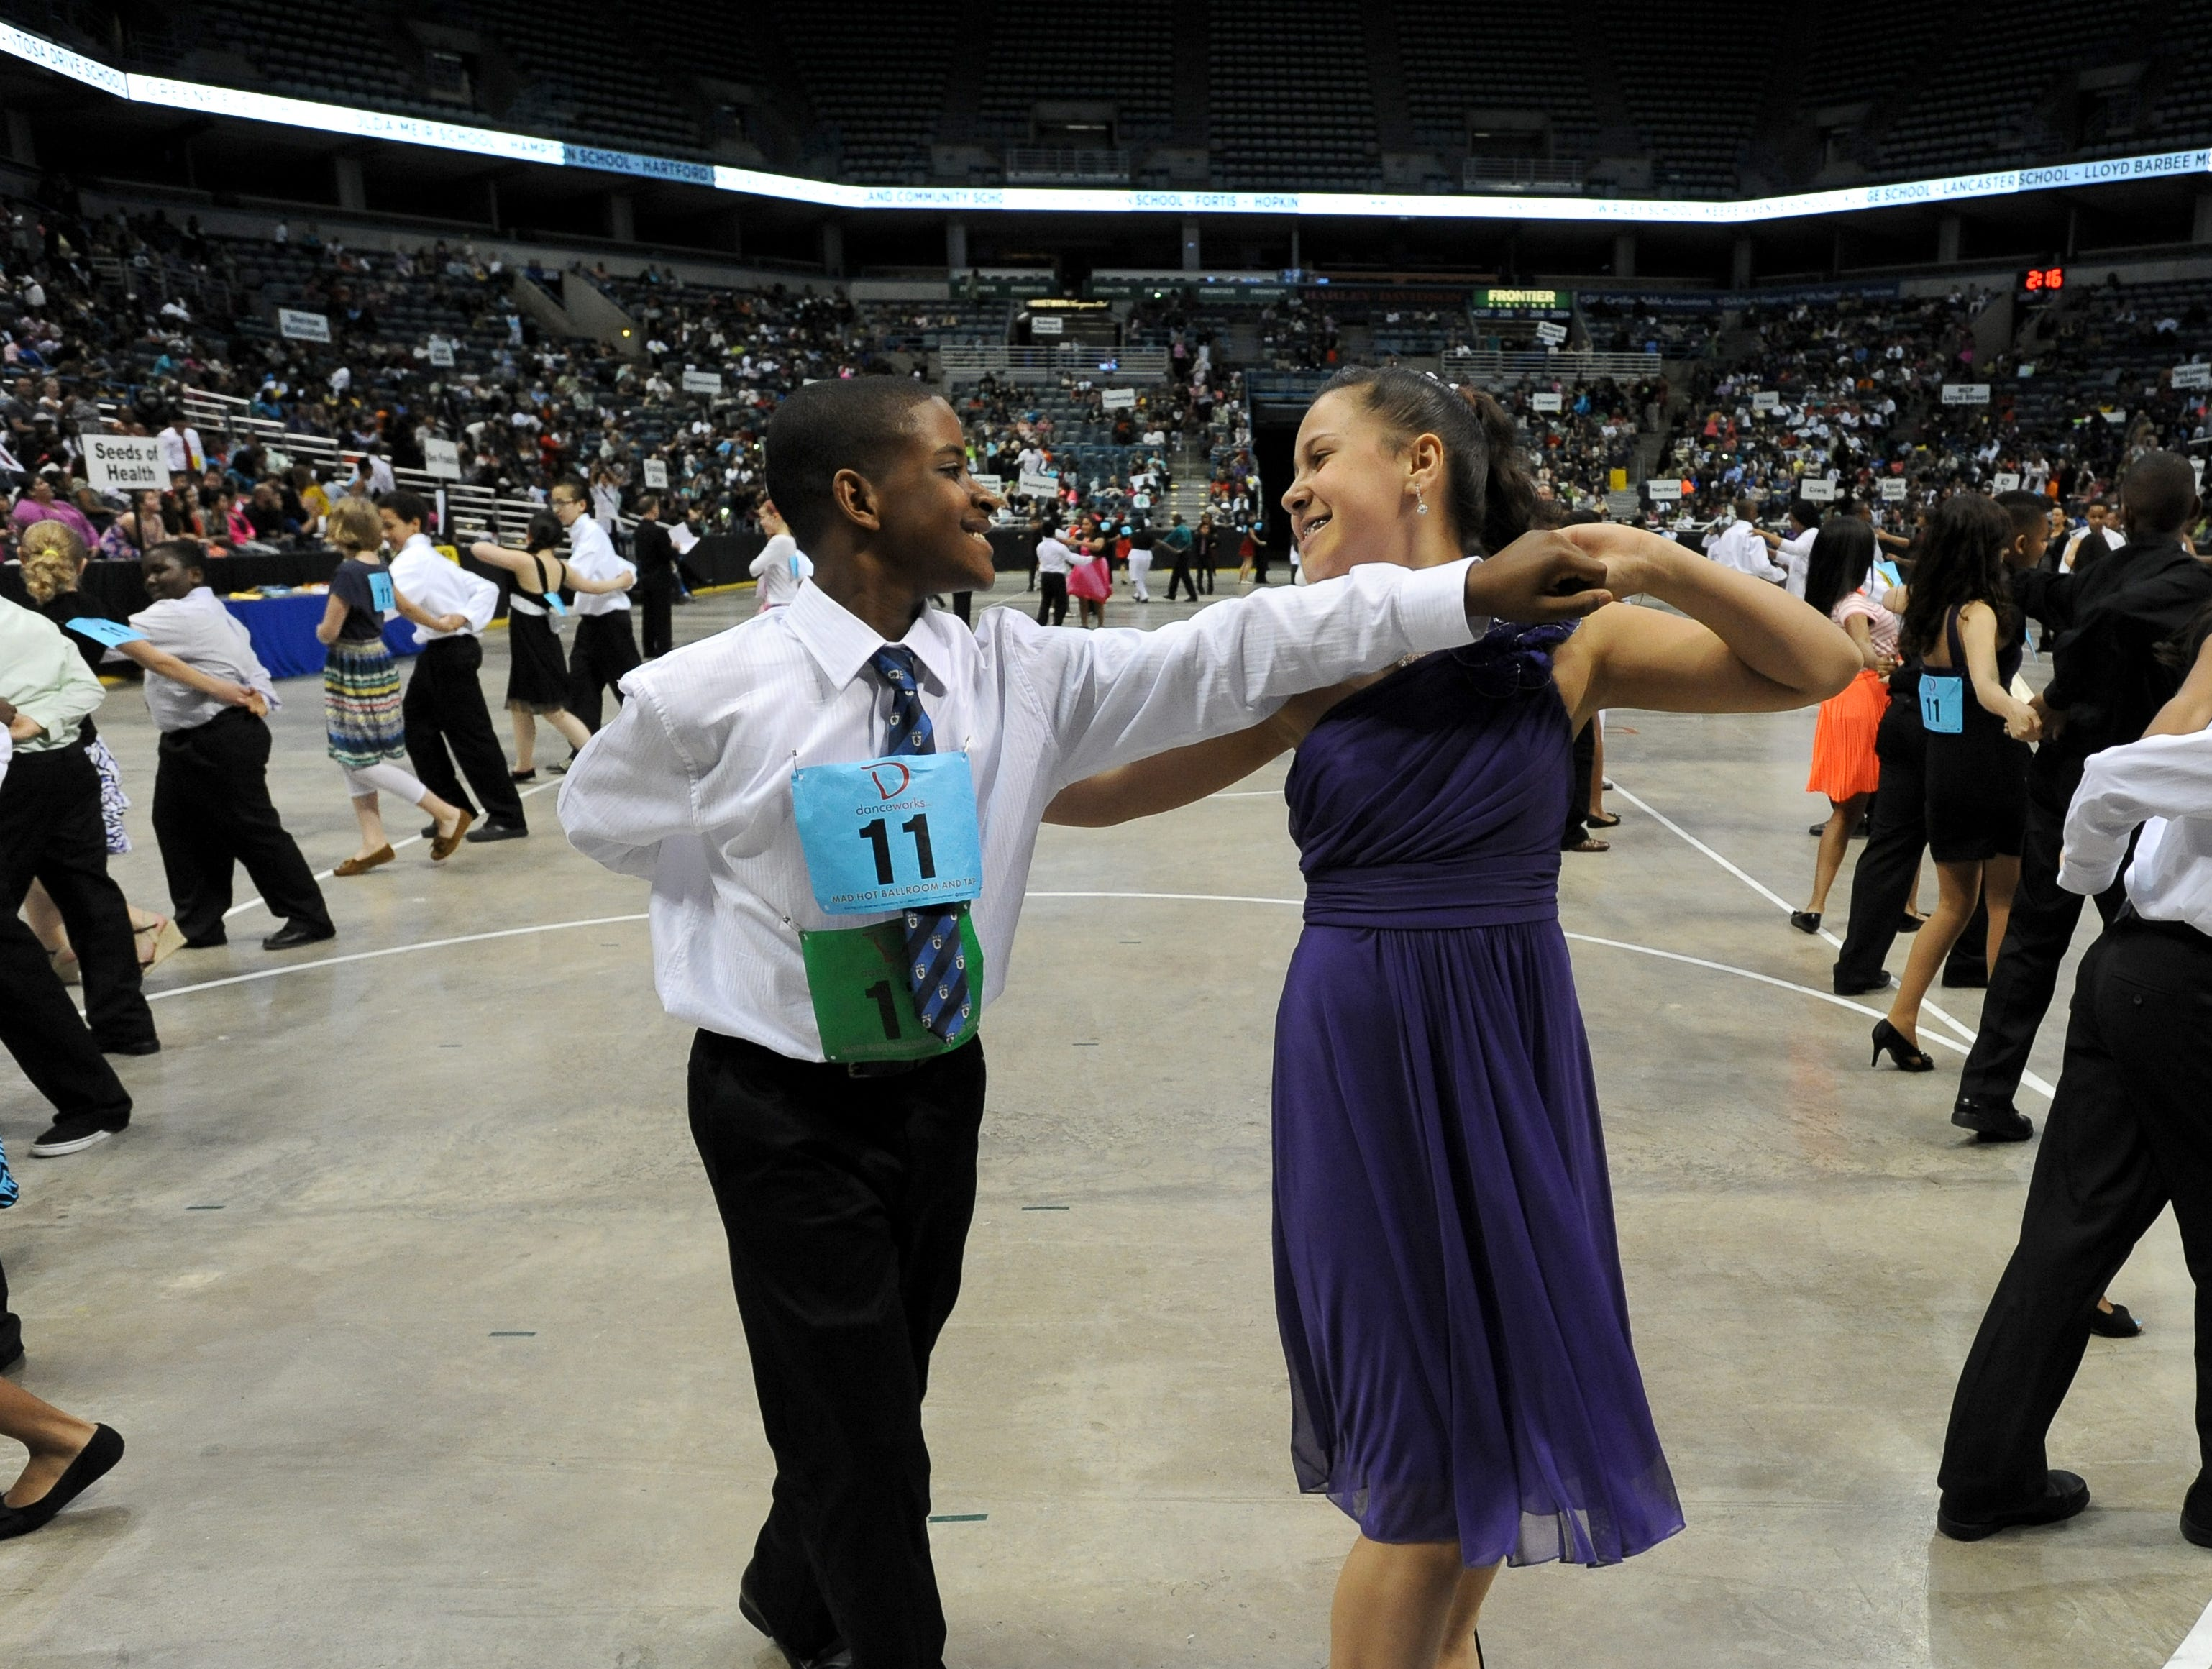 2013: Myles Walker, left, and partner Pele Salinas, right dance the cha cha. Nearly 2,200 local students from 43 area schools perform and compete in the Mad Hot Ballroom show at the Bradley Center.